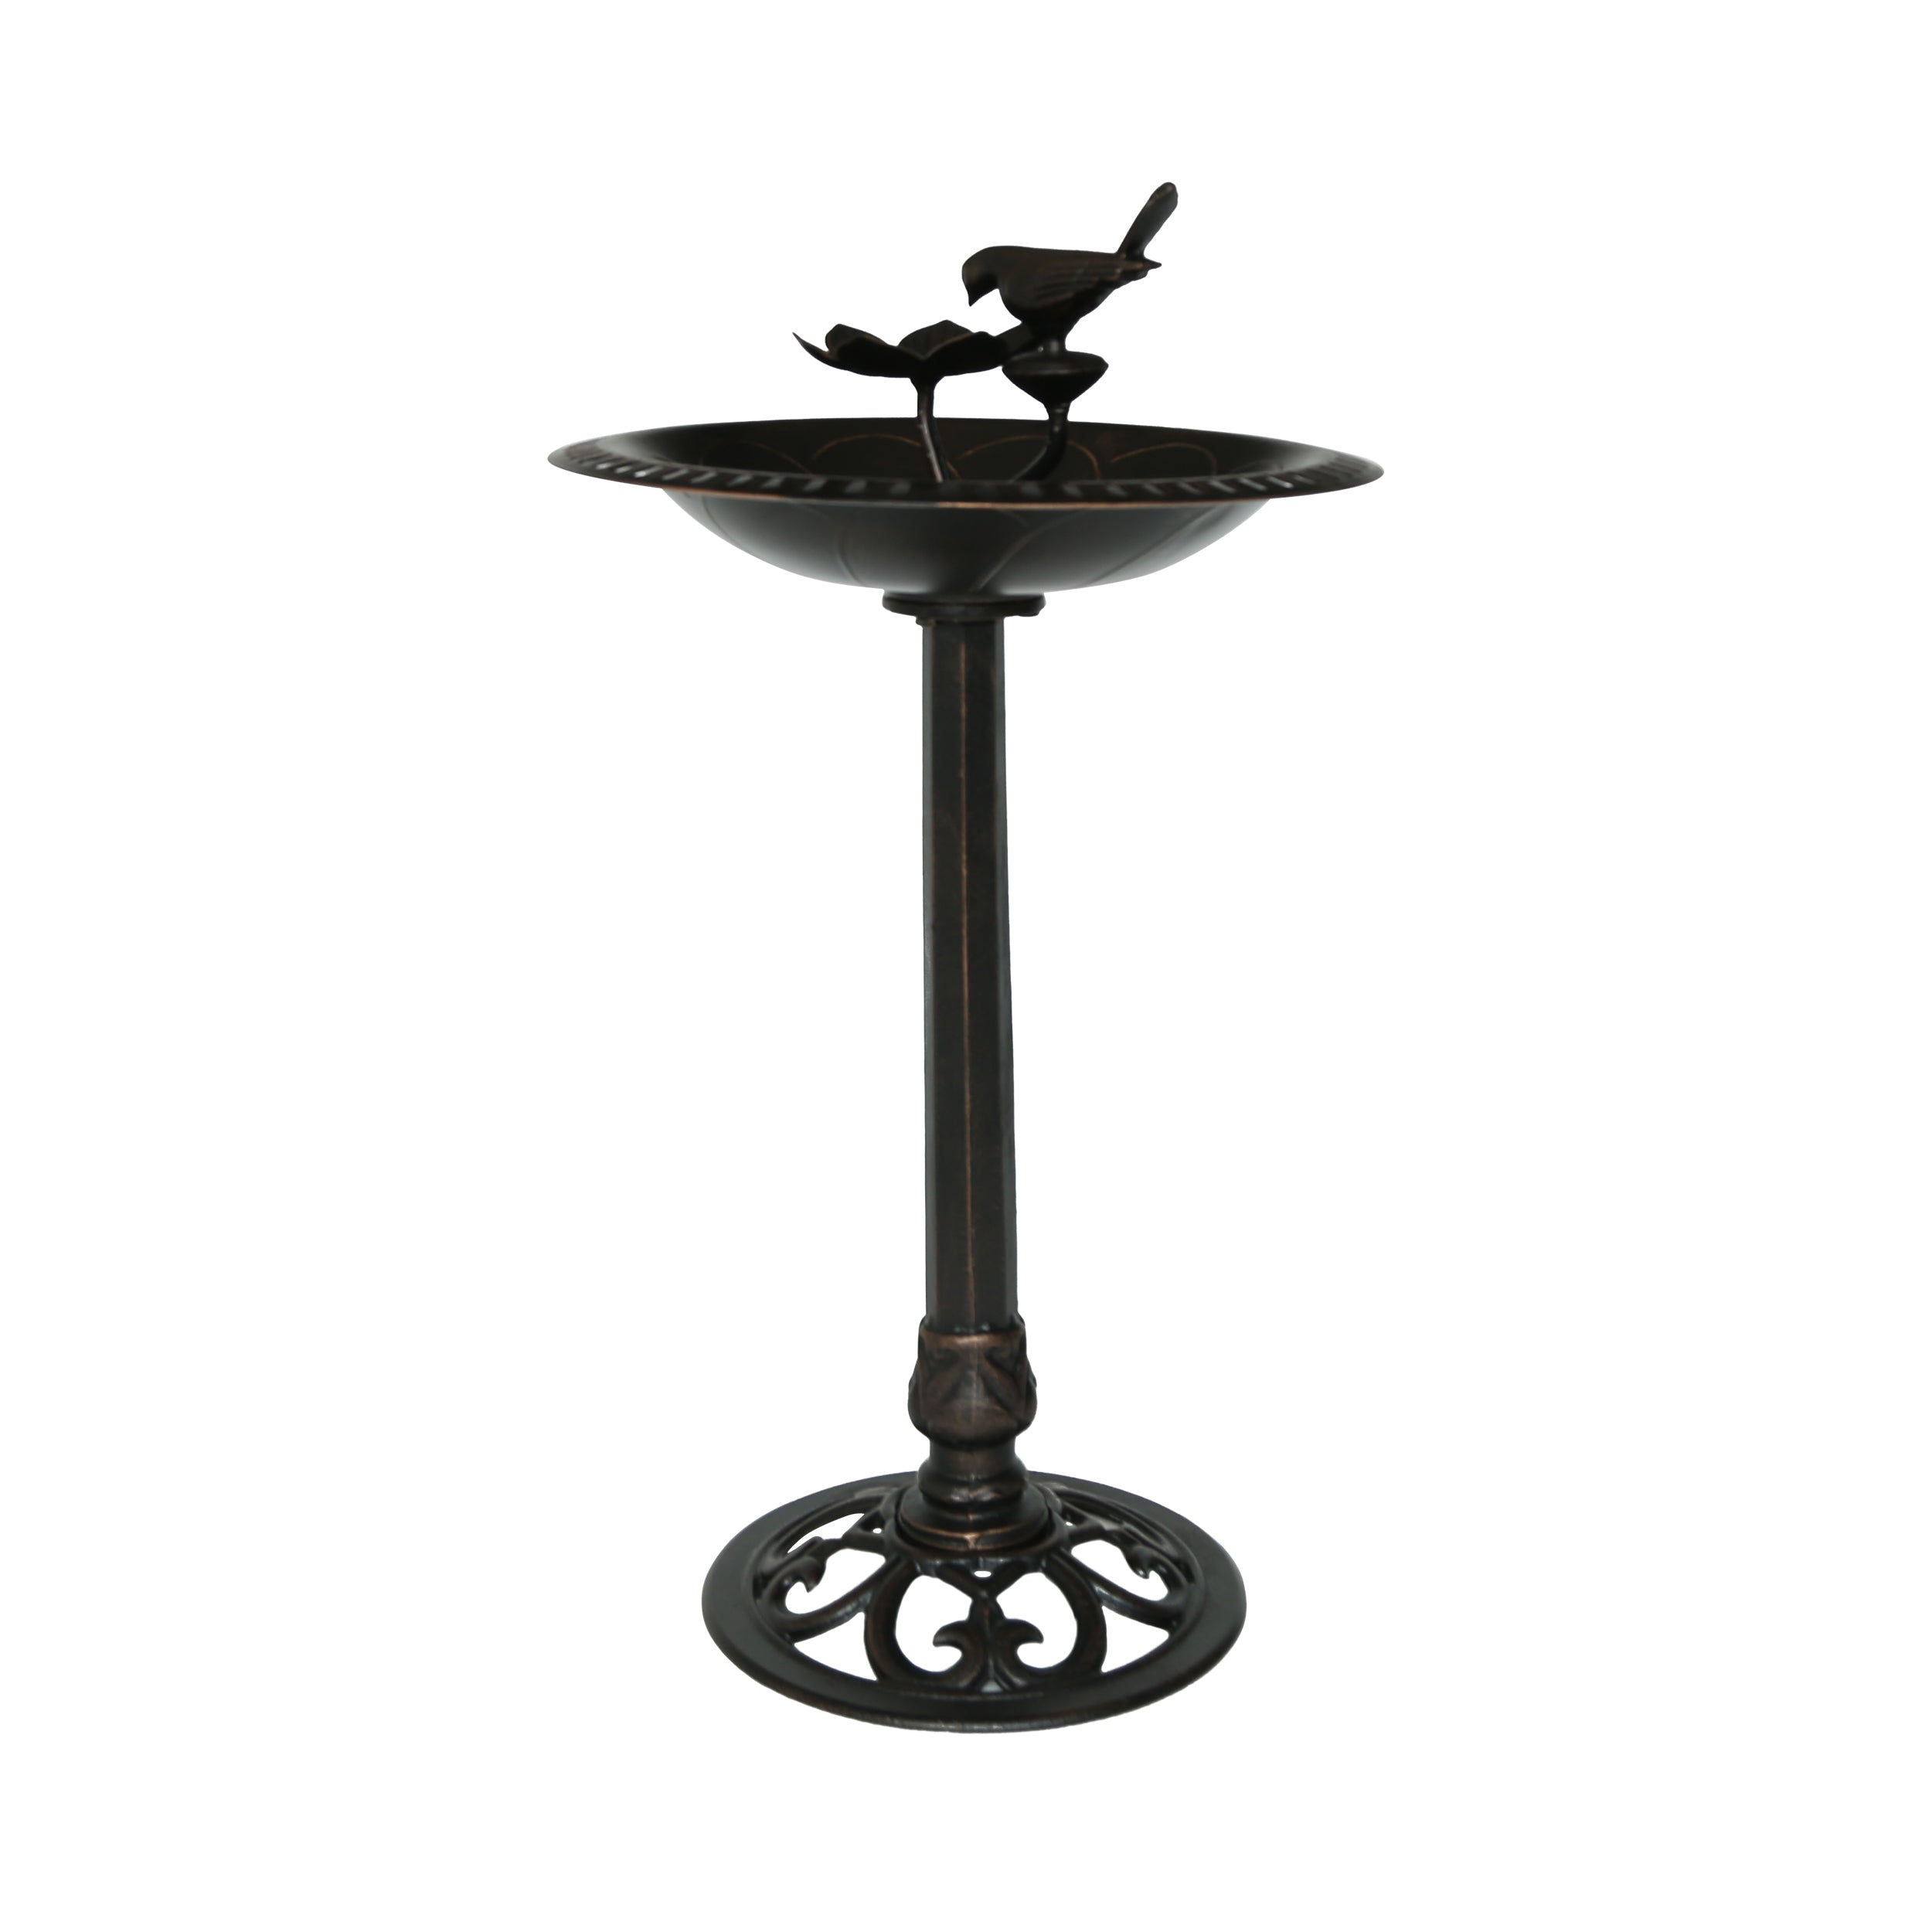 Anso Outdoor Aluminum and Iron Bird Bath Shiny Copper Default Title